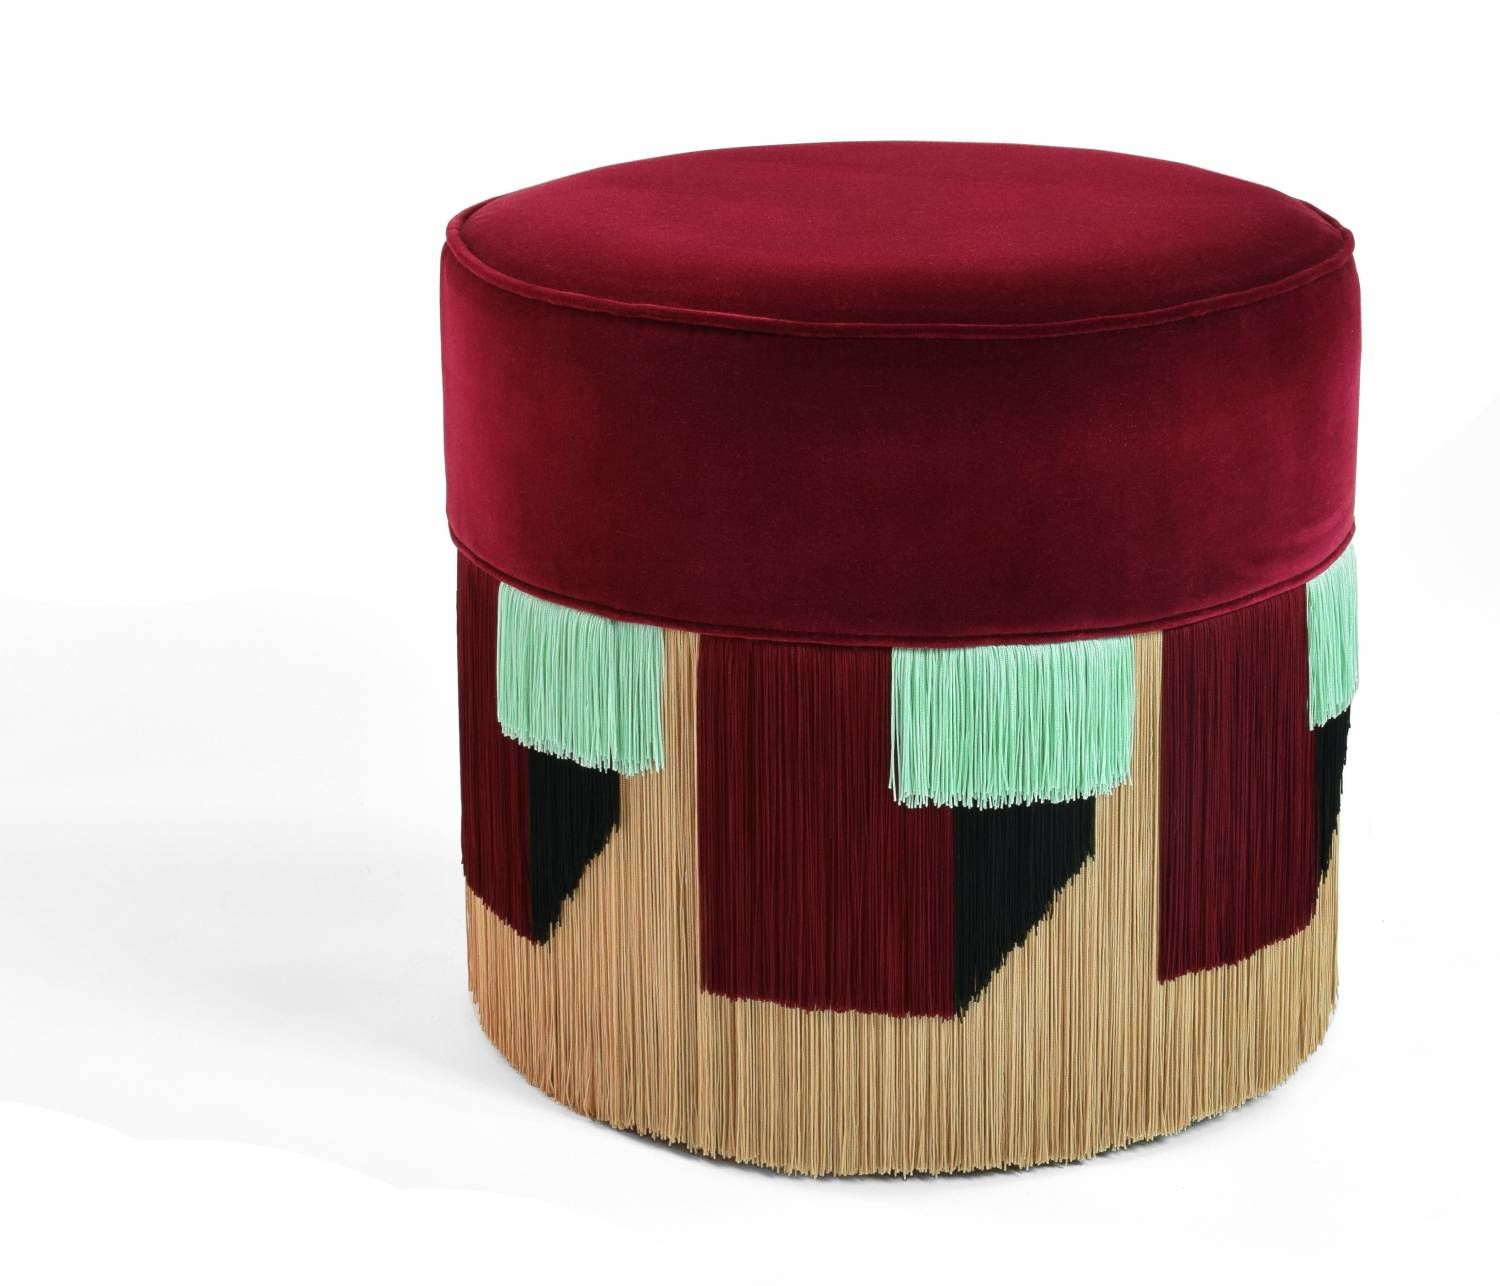 Couture pouf collection by Lorenza Bozzoli | Flodeau.com | Have a ...